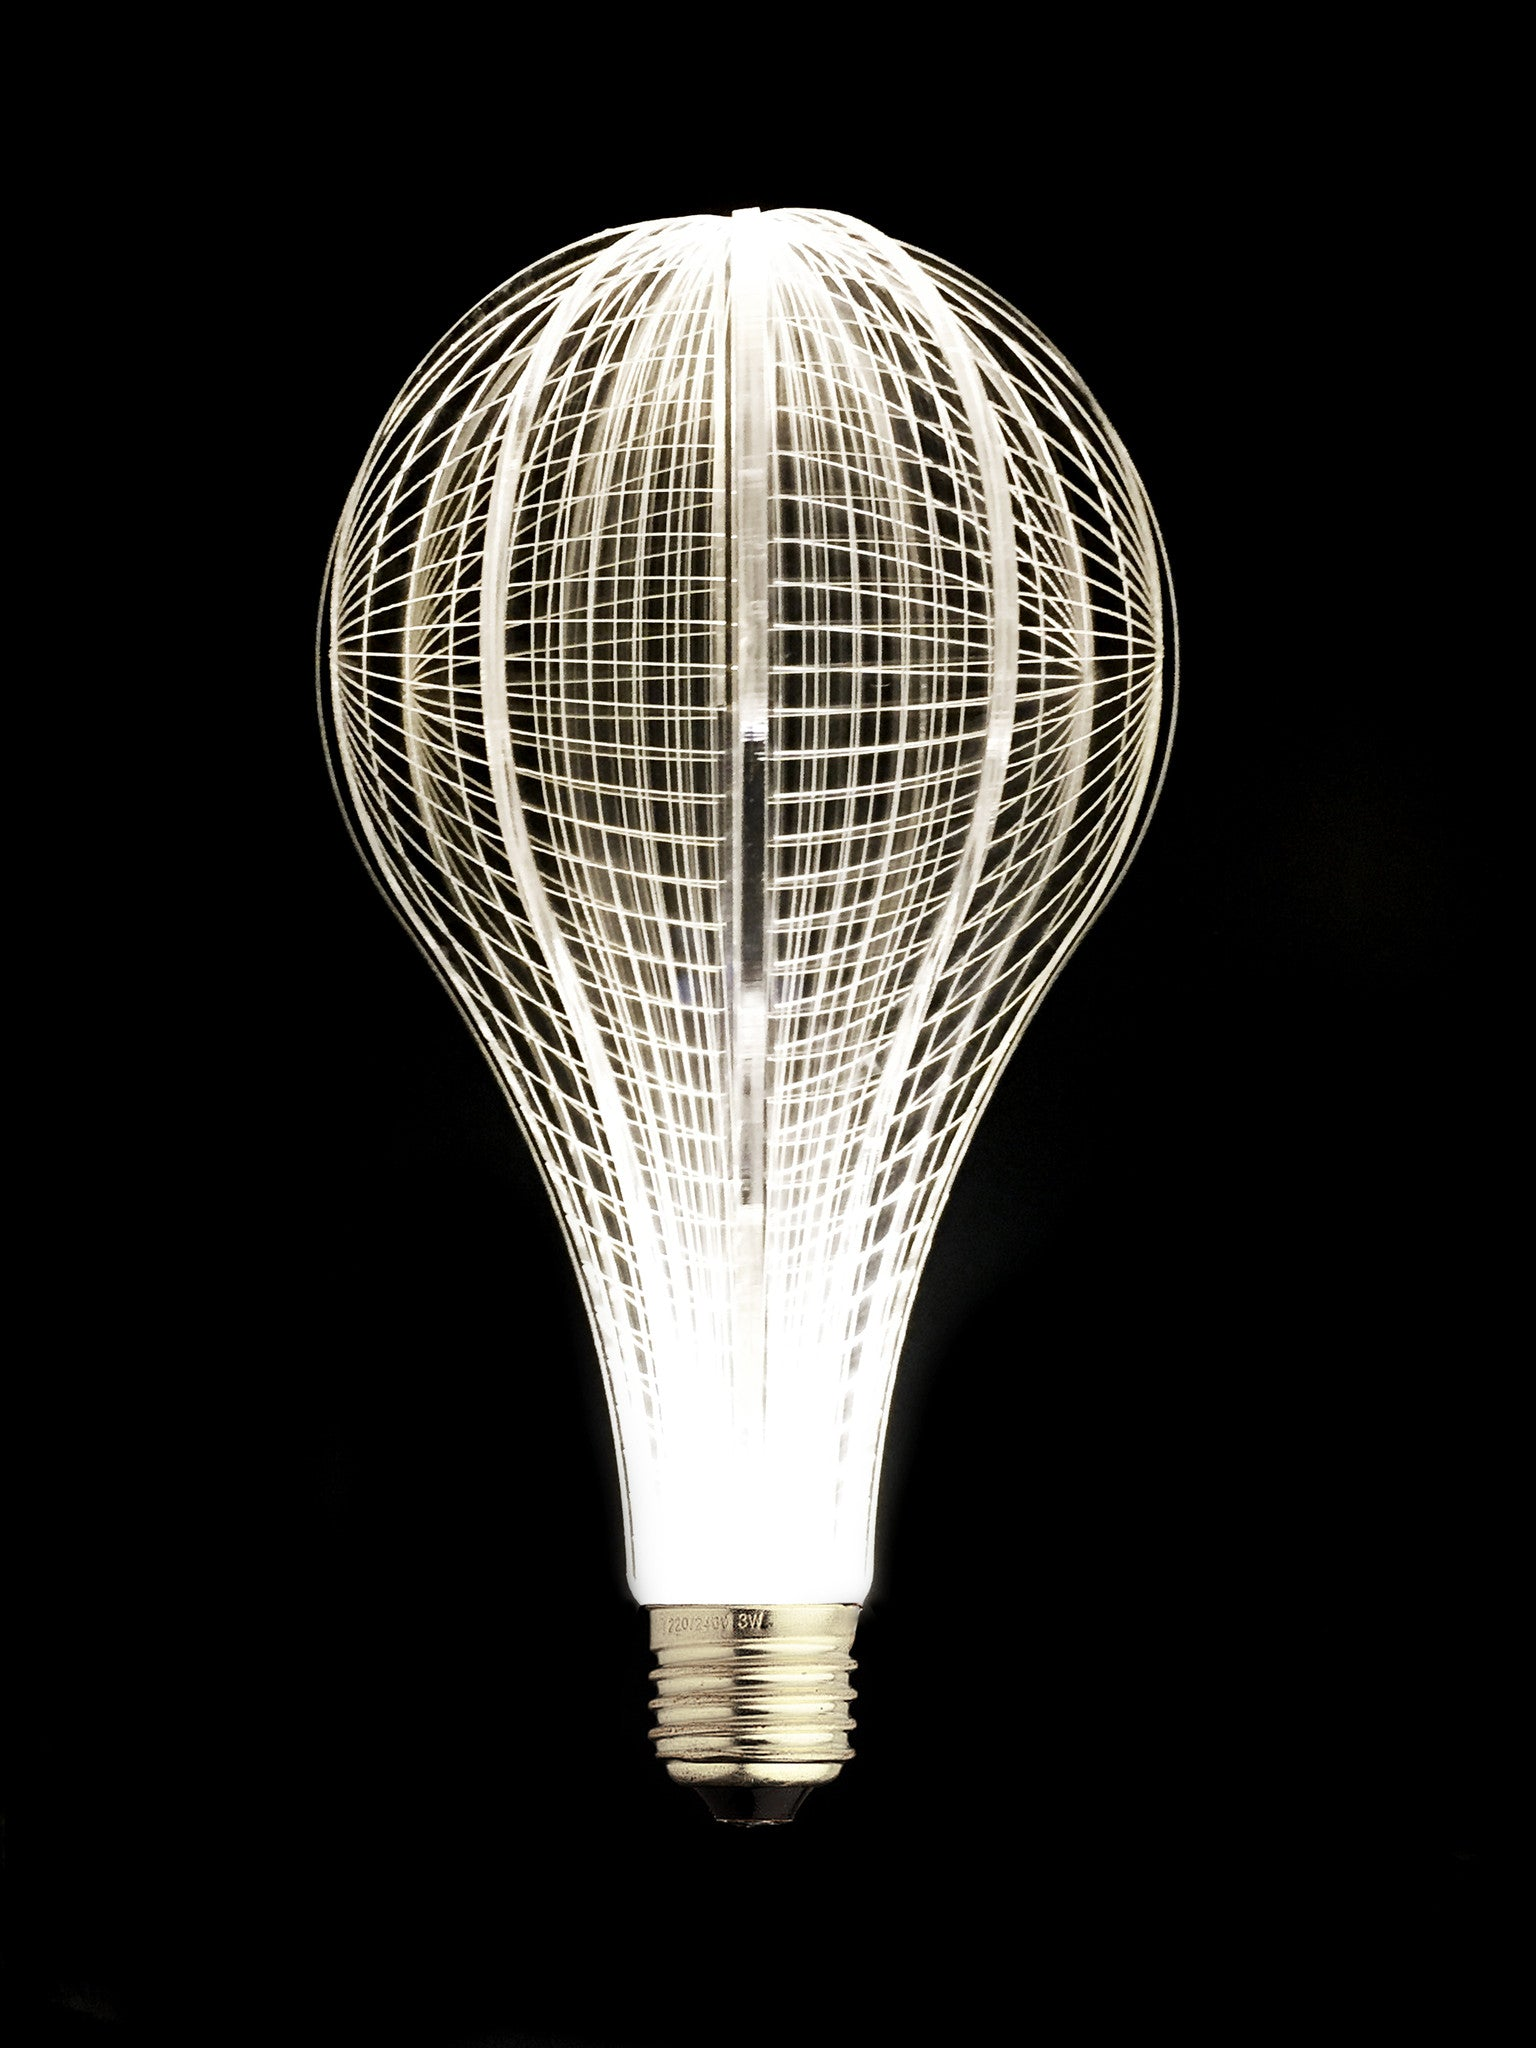 EARTH  . CLASSIC LIGHTING BULBS . DESIGN 1 + 1 . HONG KONG DESIGNER